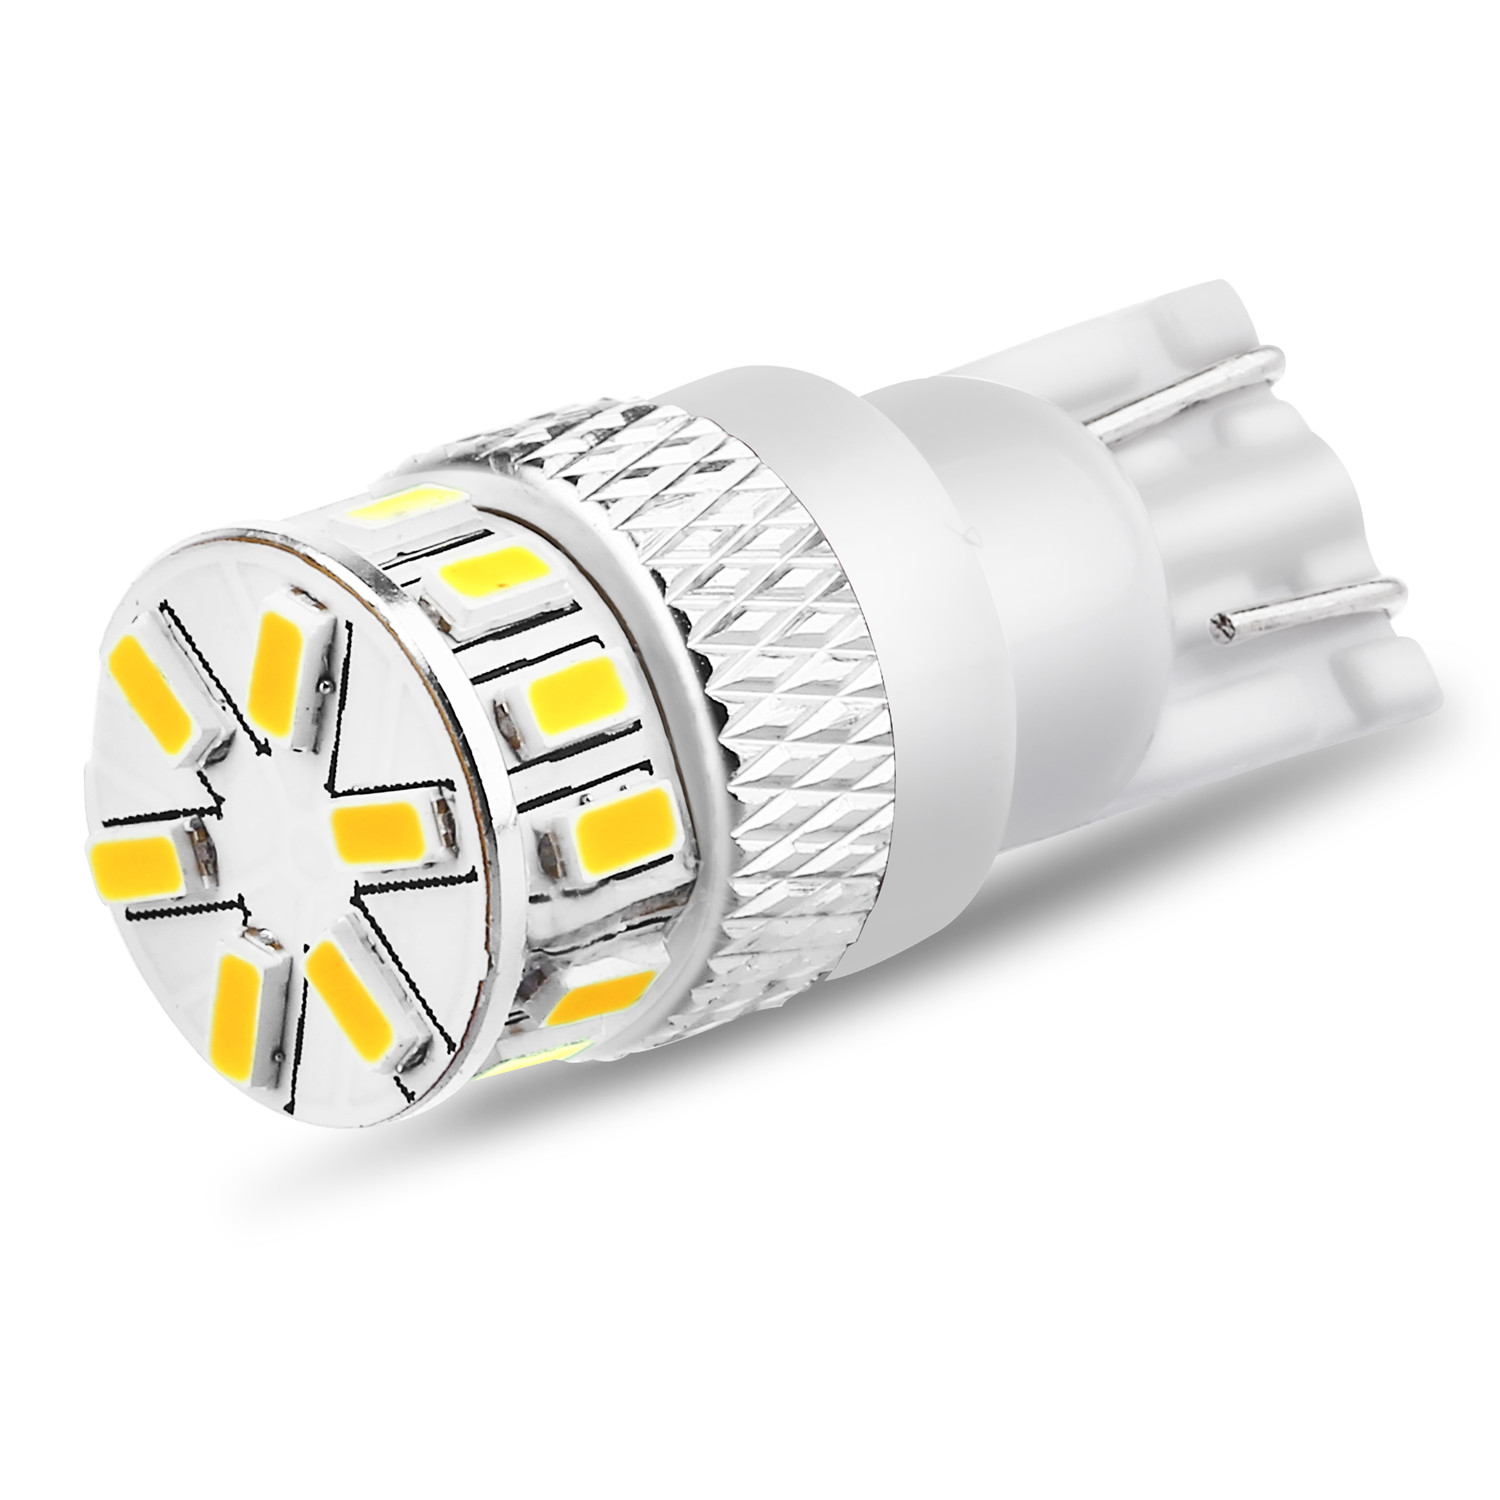 2013 Ram C/V LED Glove Box Light Bulb 12V Replacement